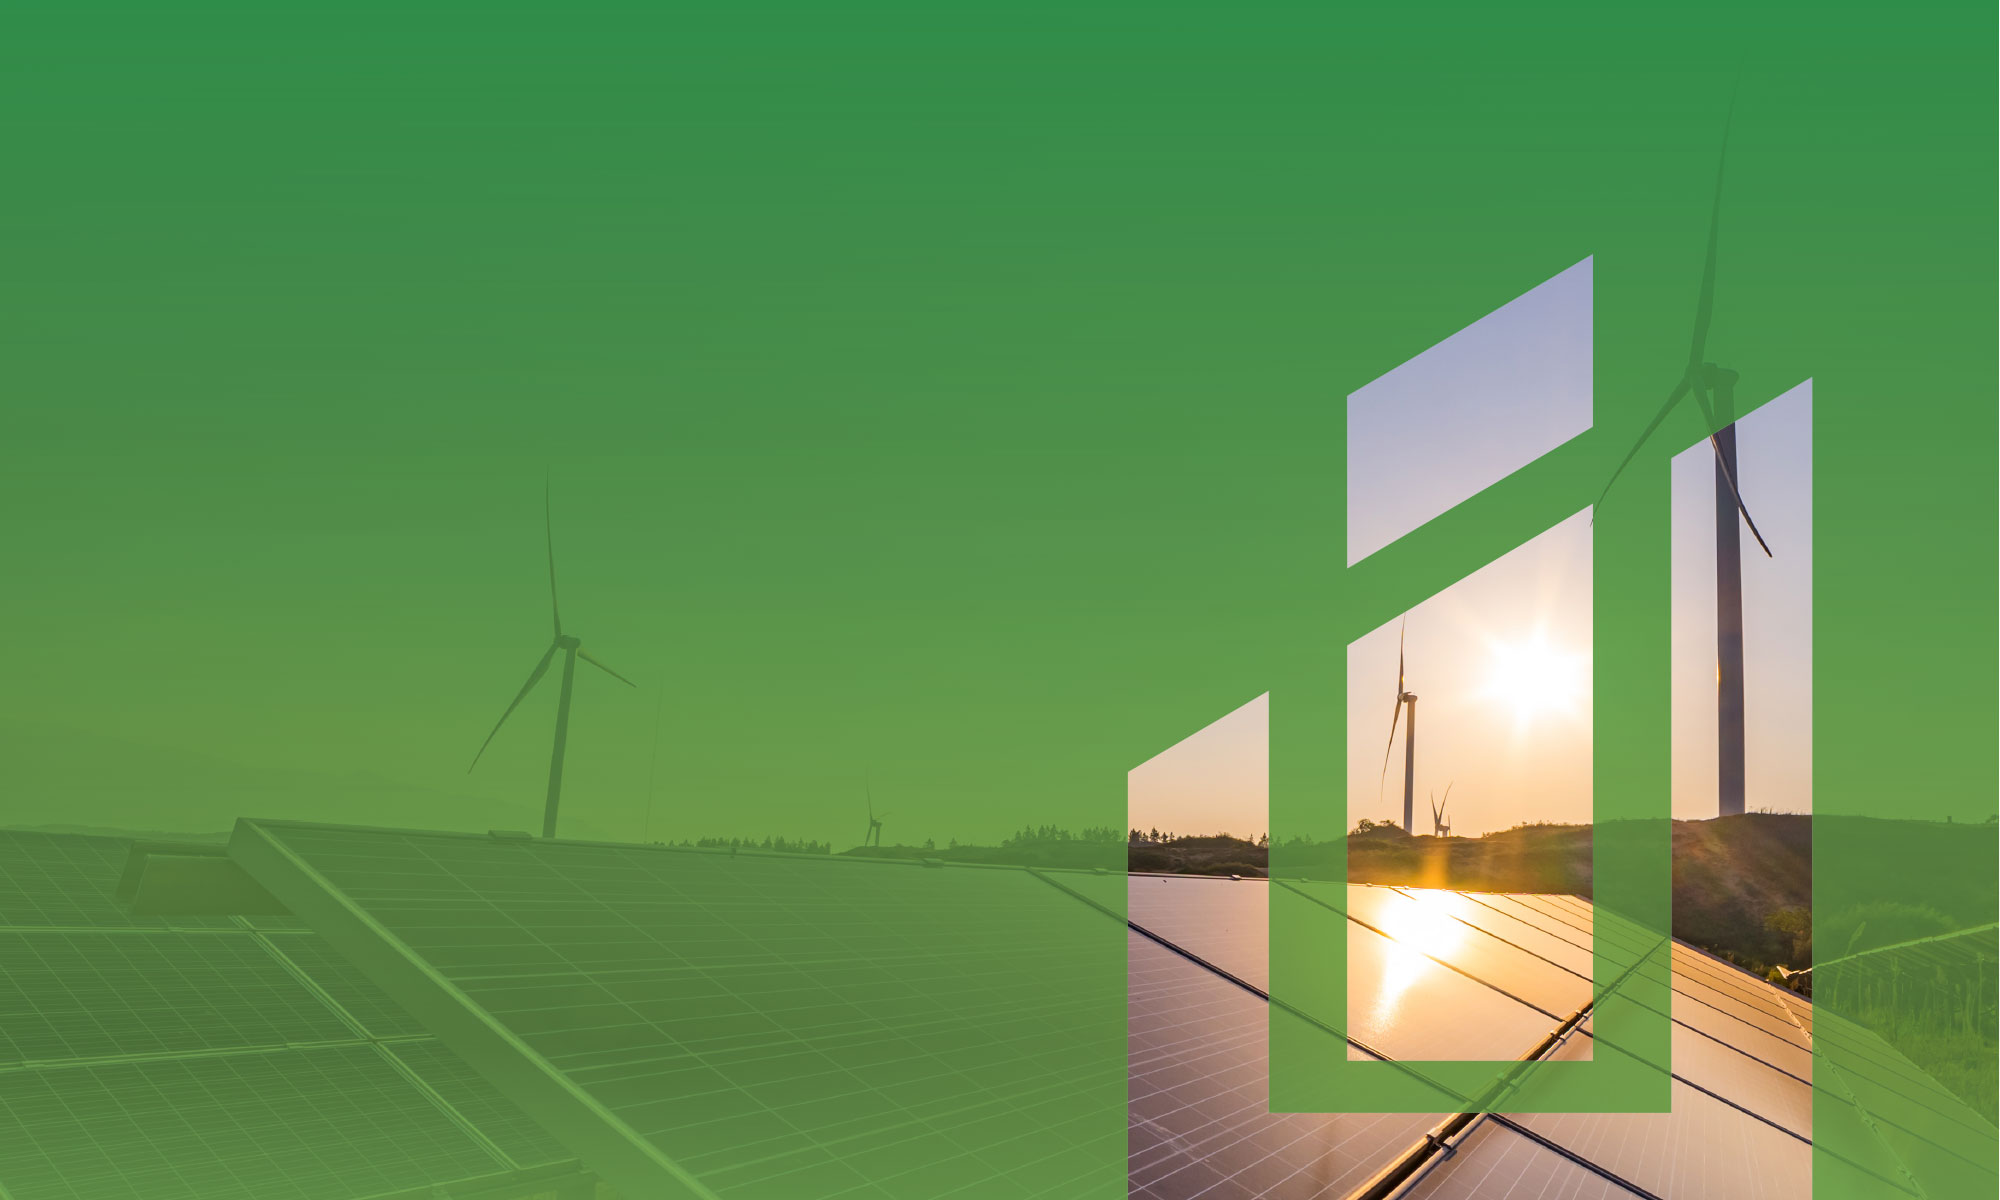 Investor Update is pleased to announce the publication of our latest piece of focused ESG research